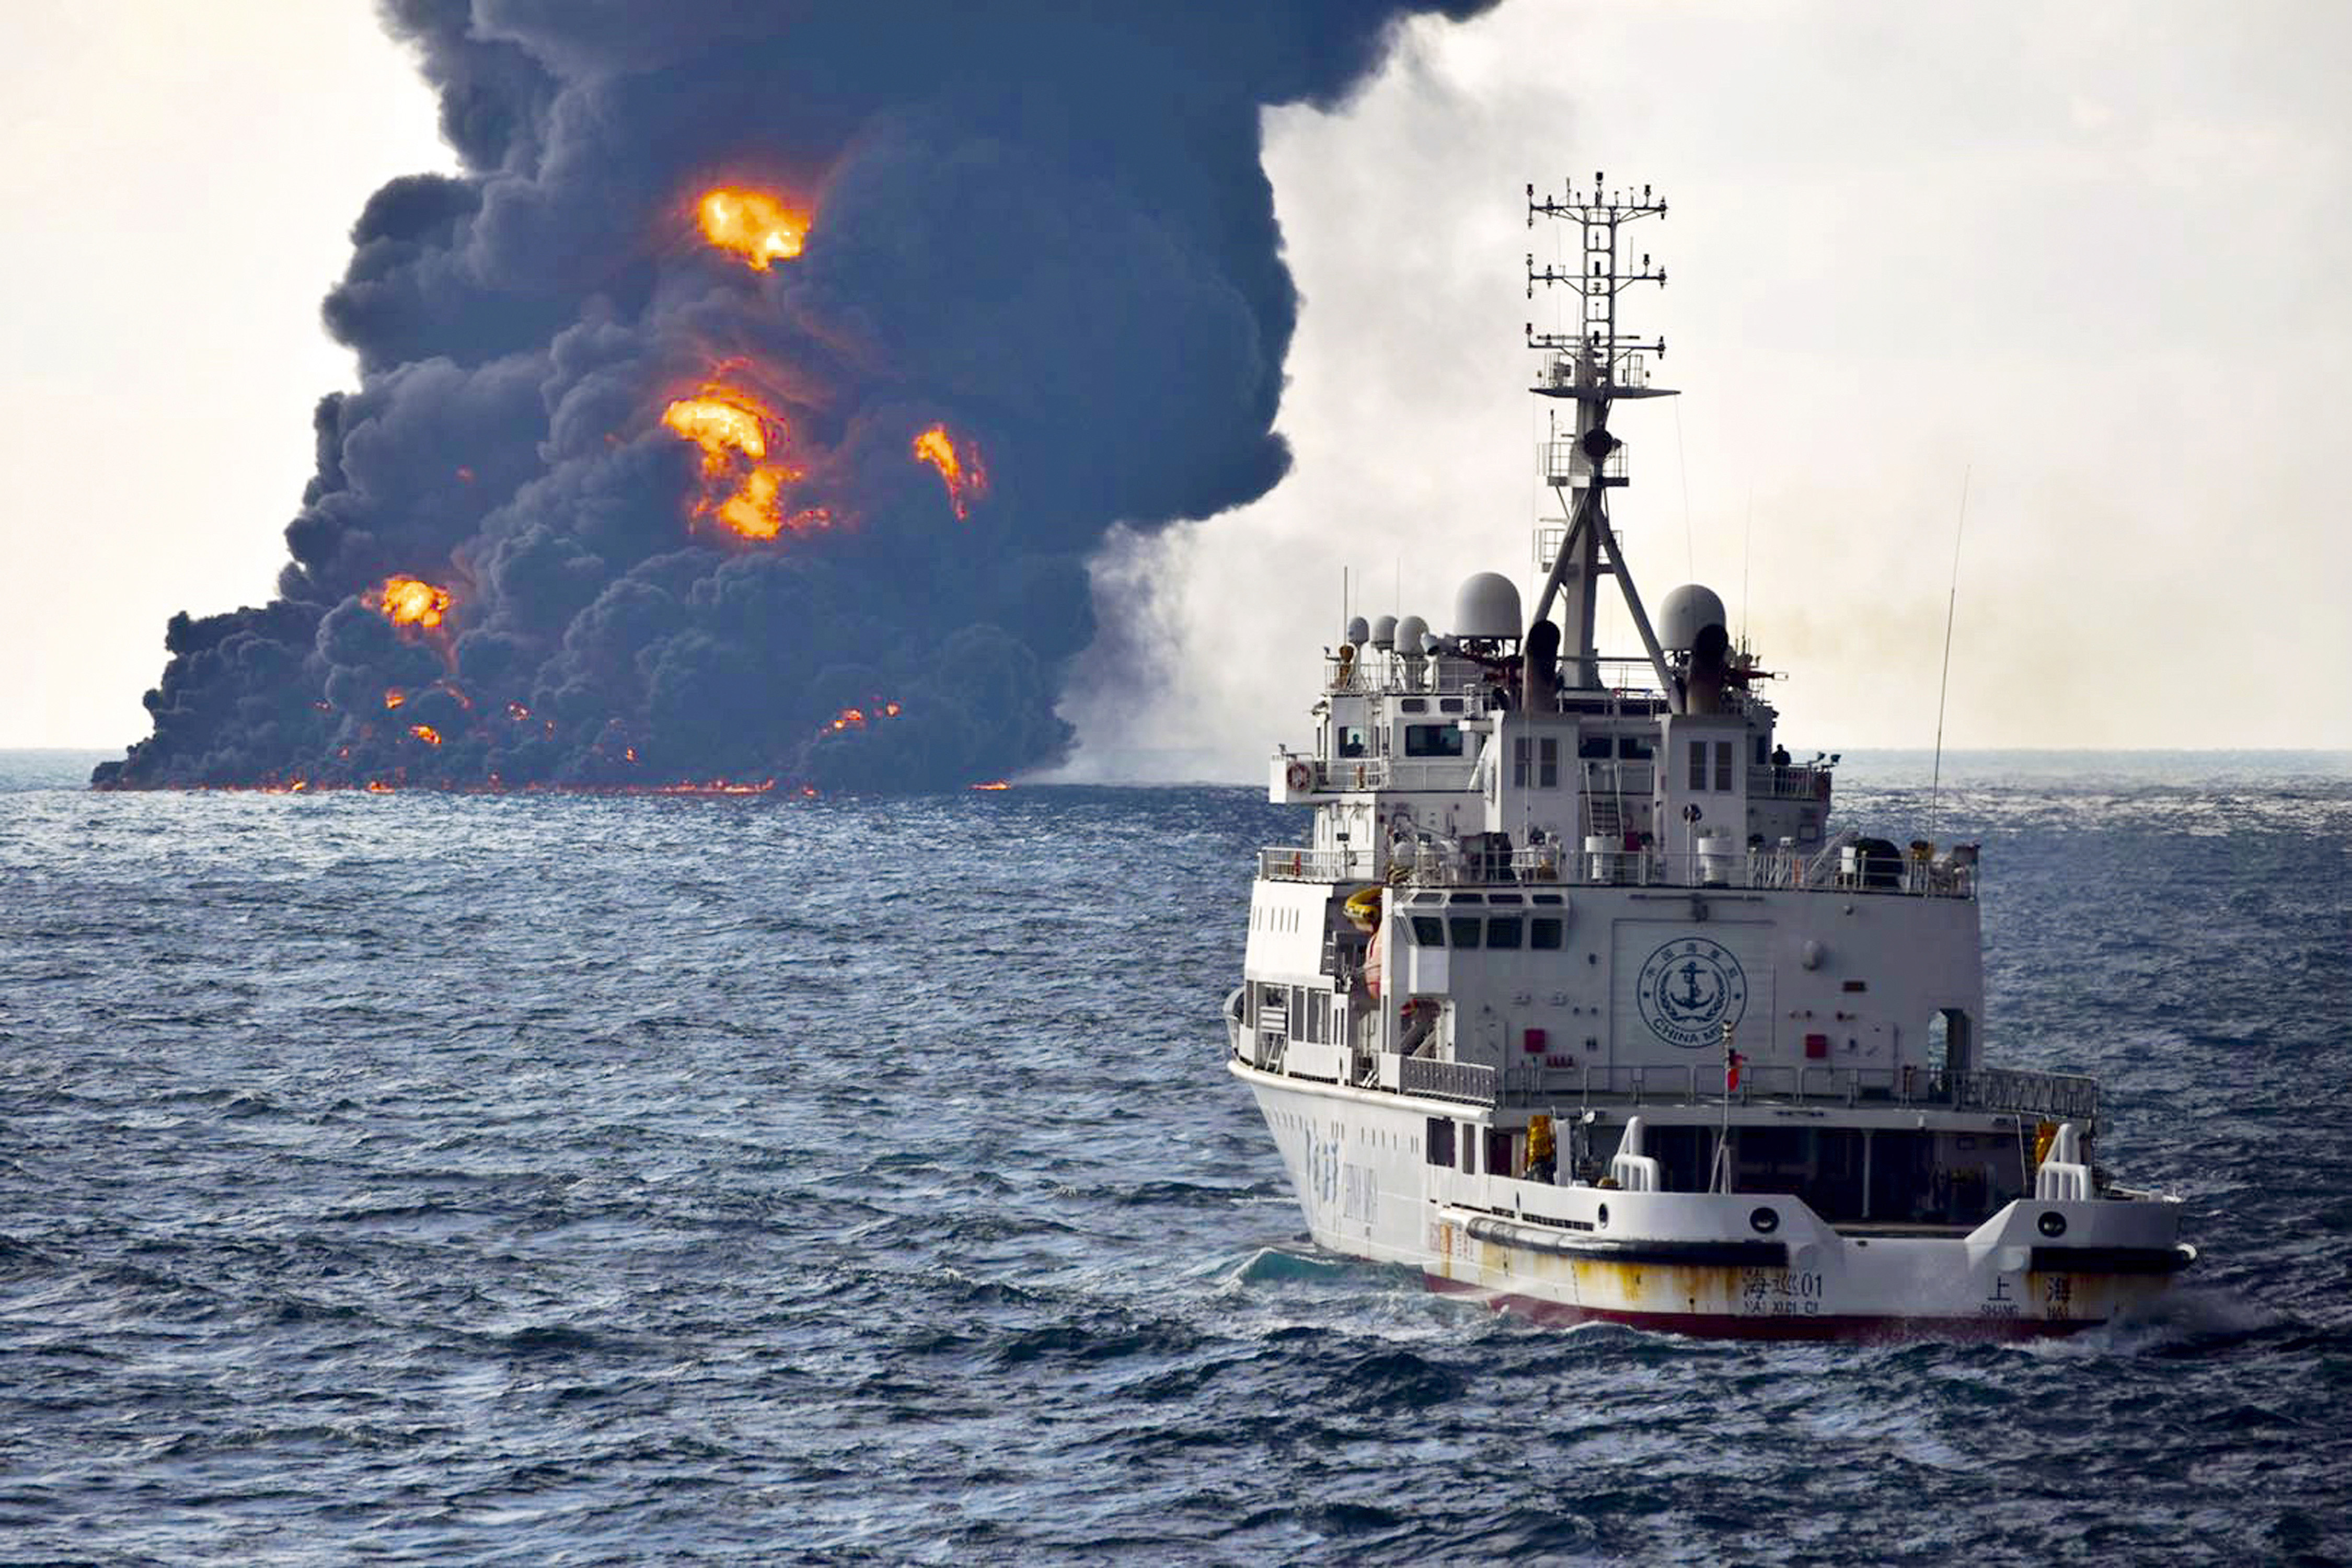 Giant Oil Spill Contaminates East China Sea